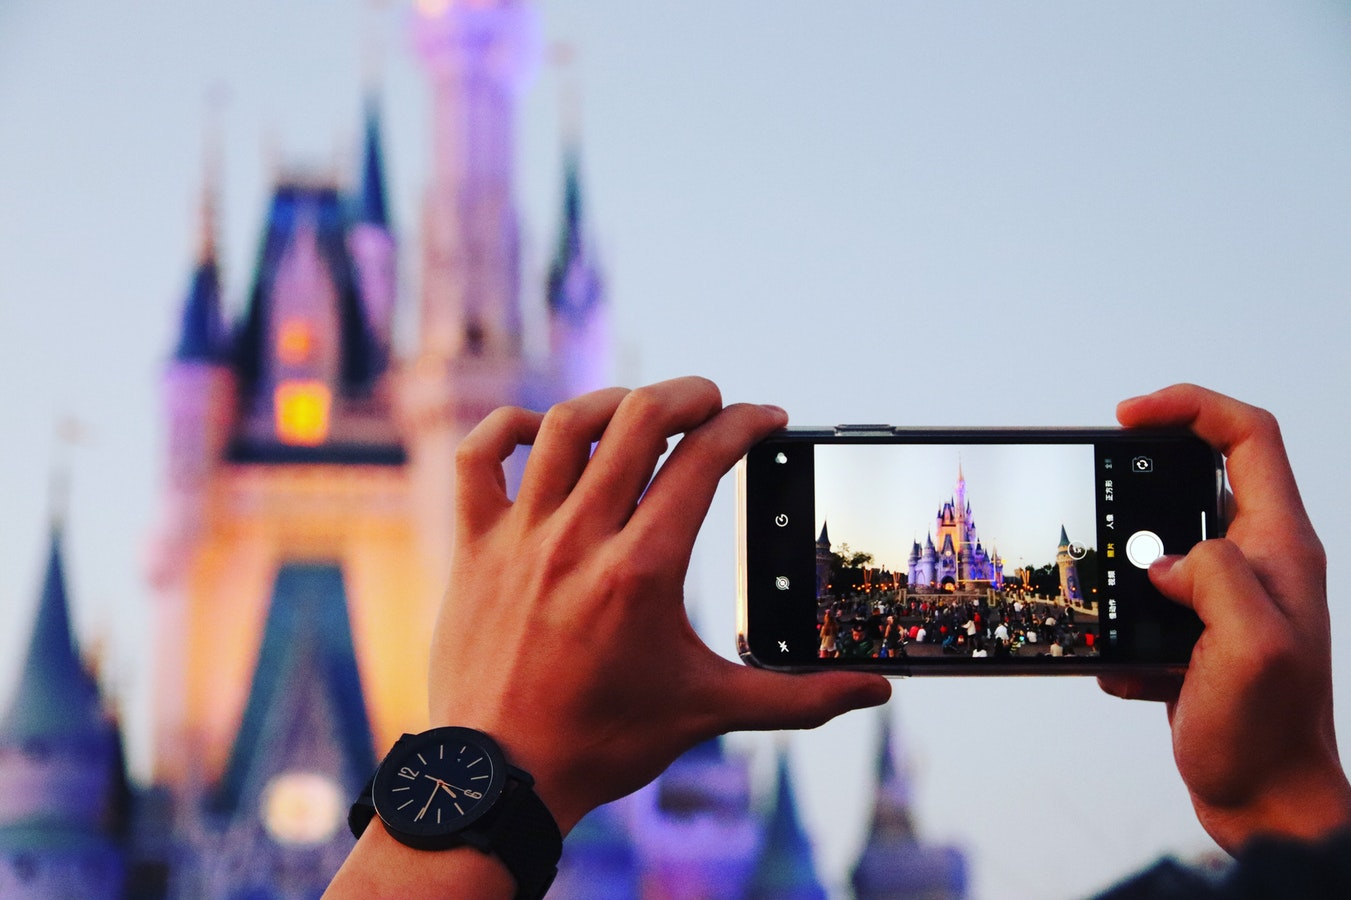 taking picture of Disney castle